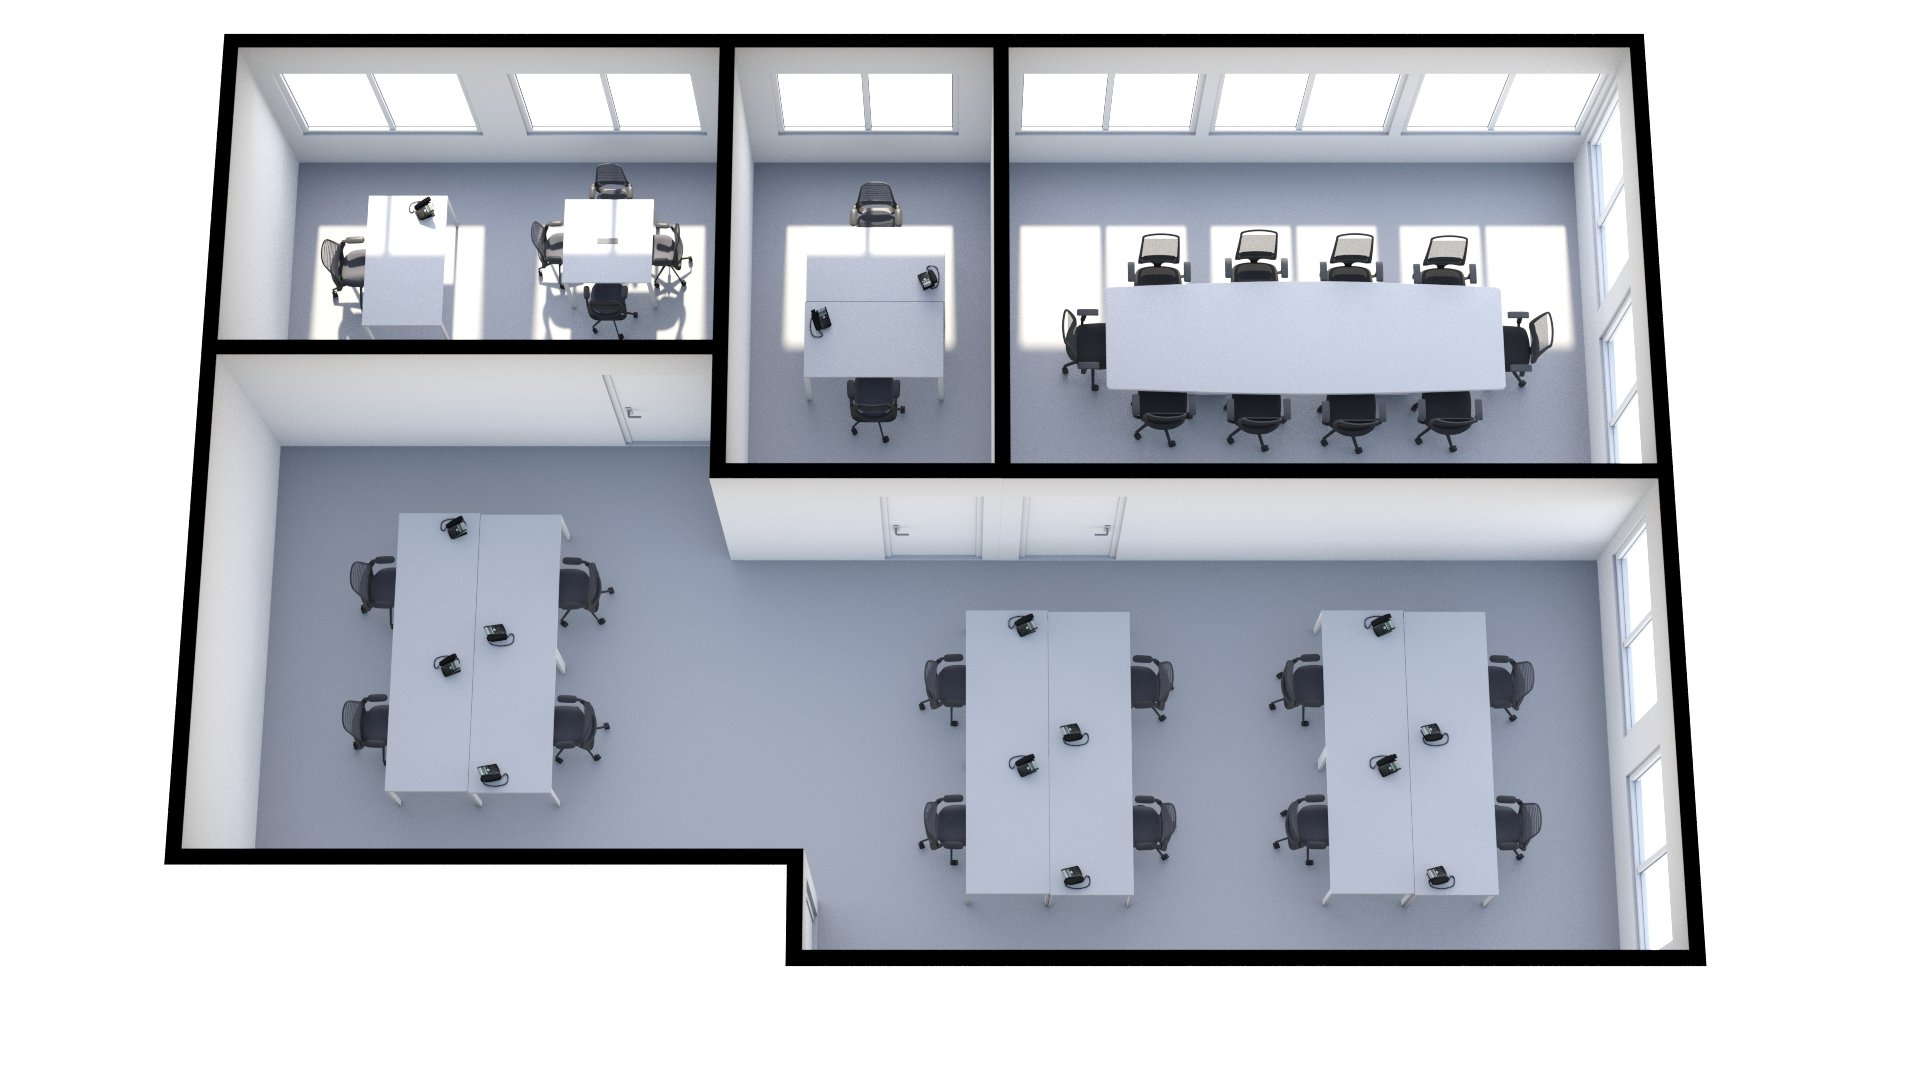 506-7 Floor Plan (3D) 15 Desks